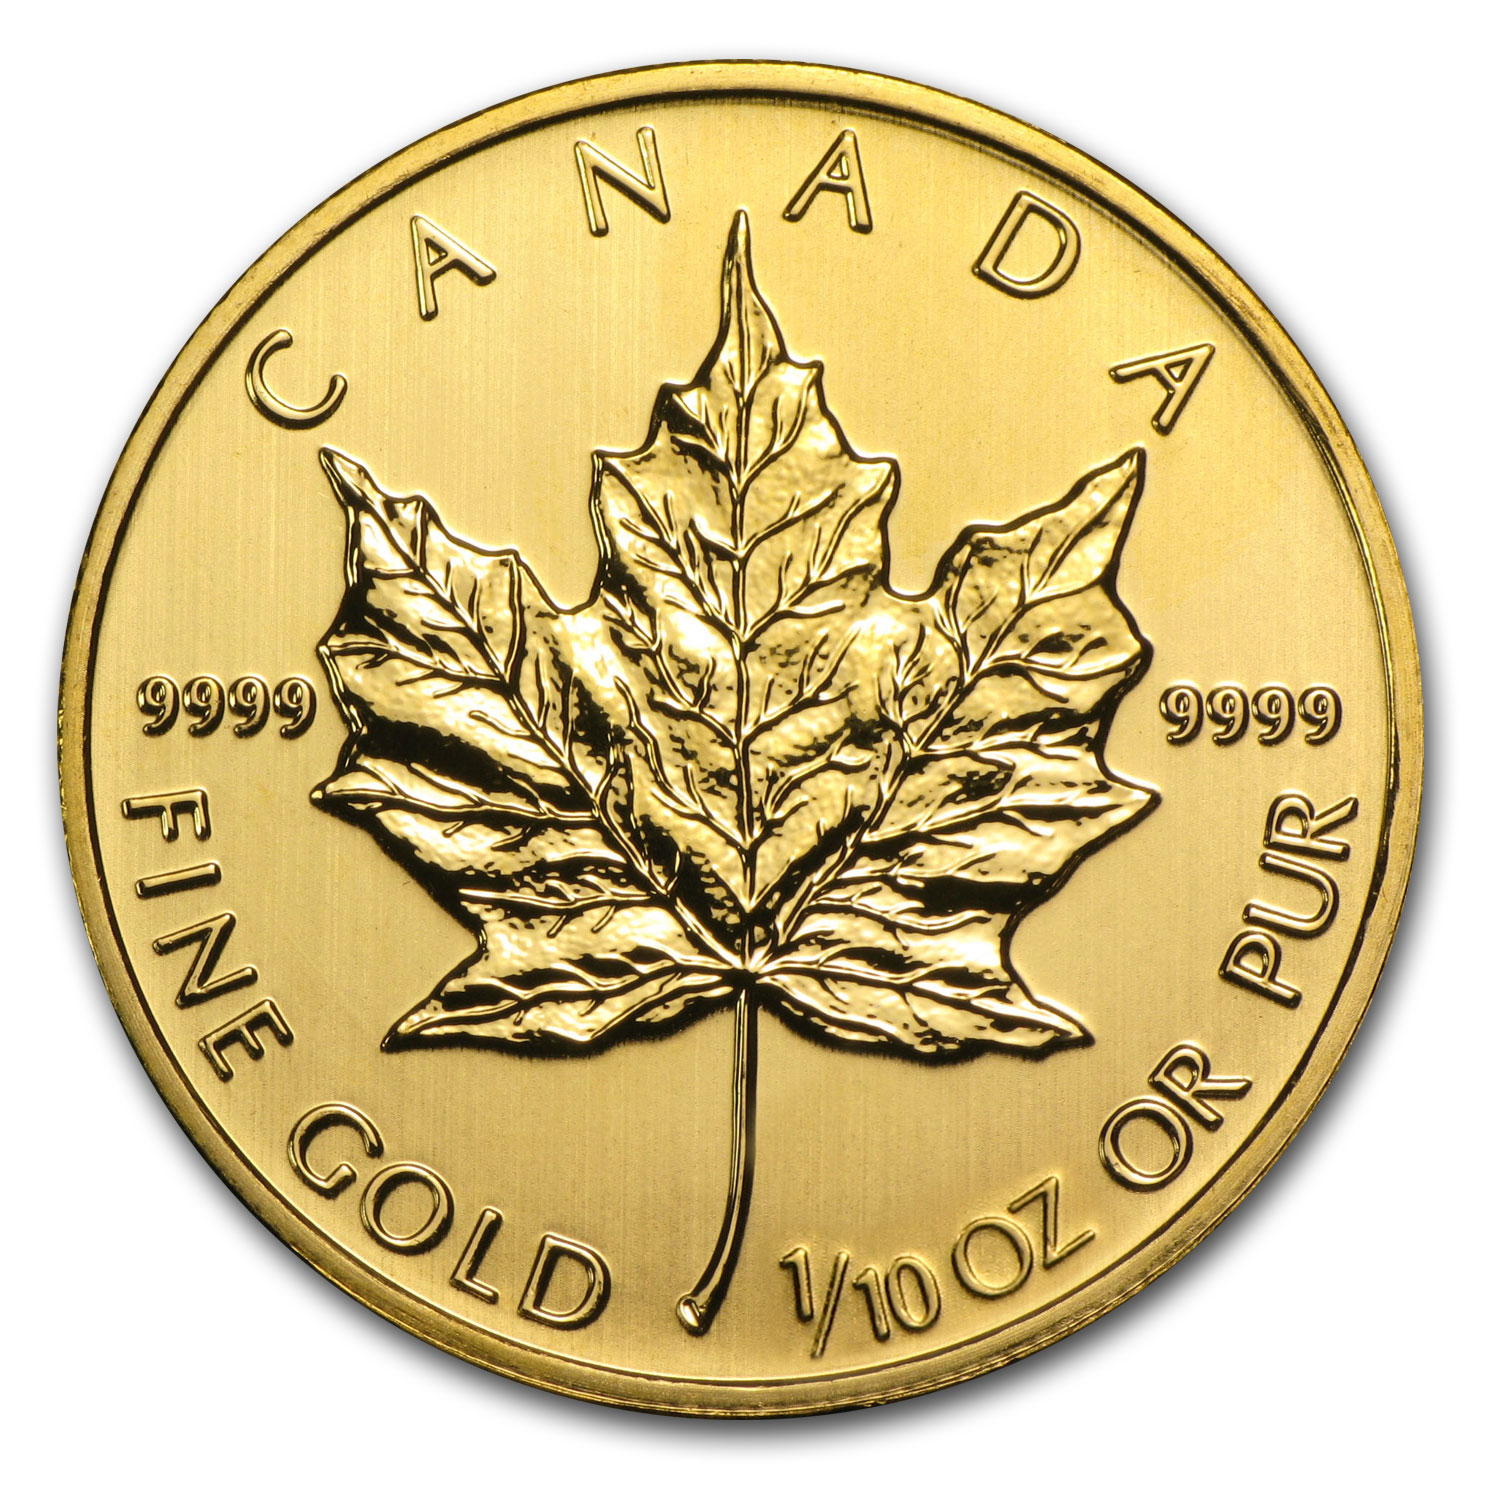 2014 1/10 oz Gold Canadian Maple Leaf BU